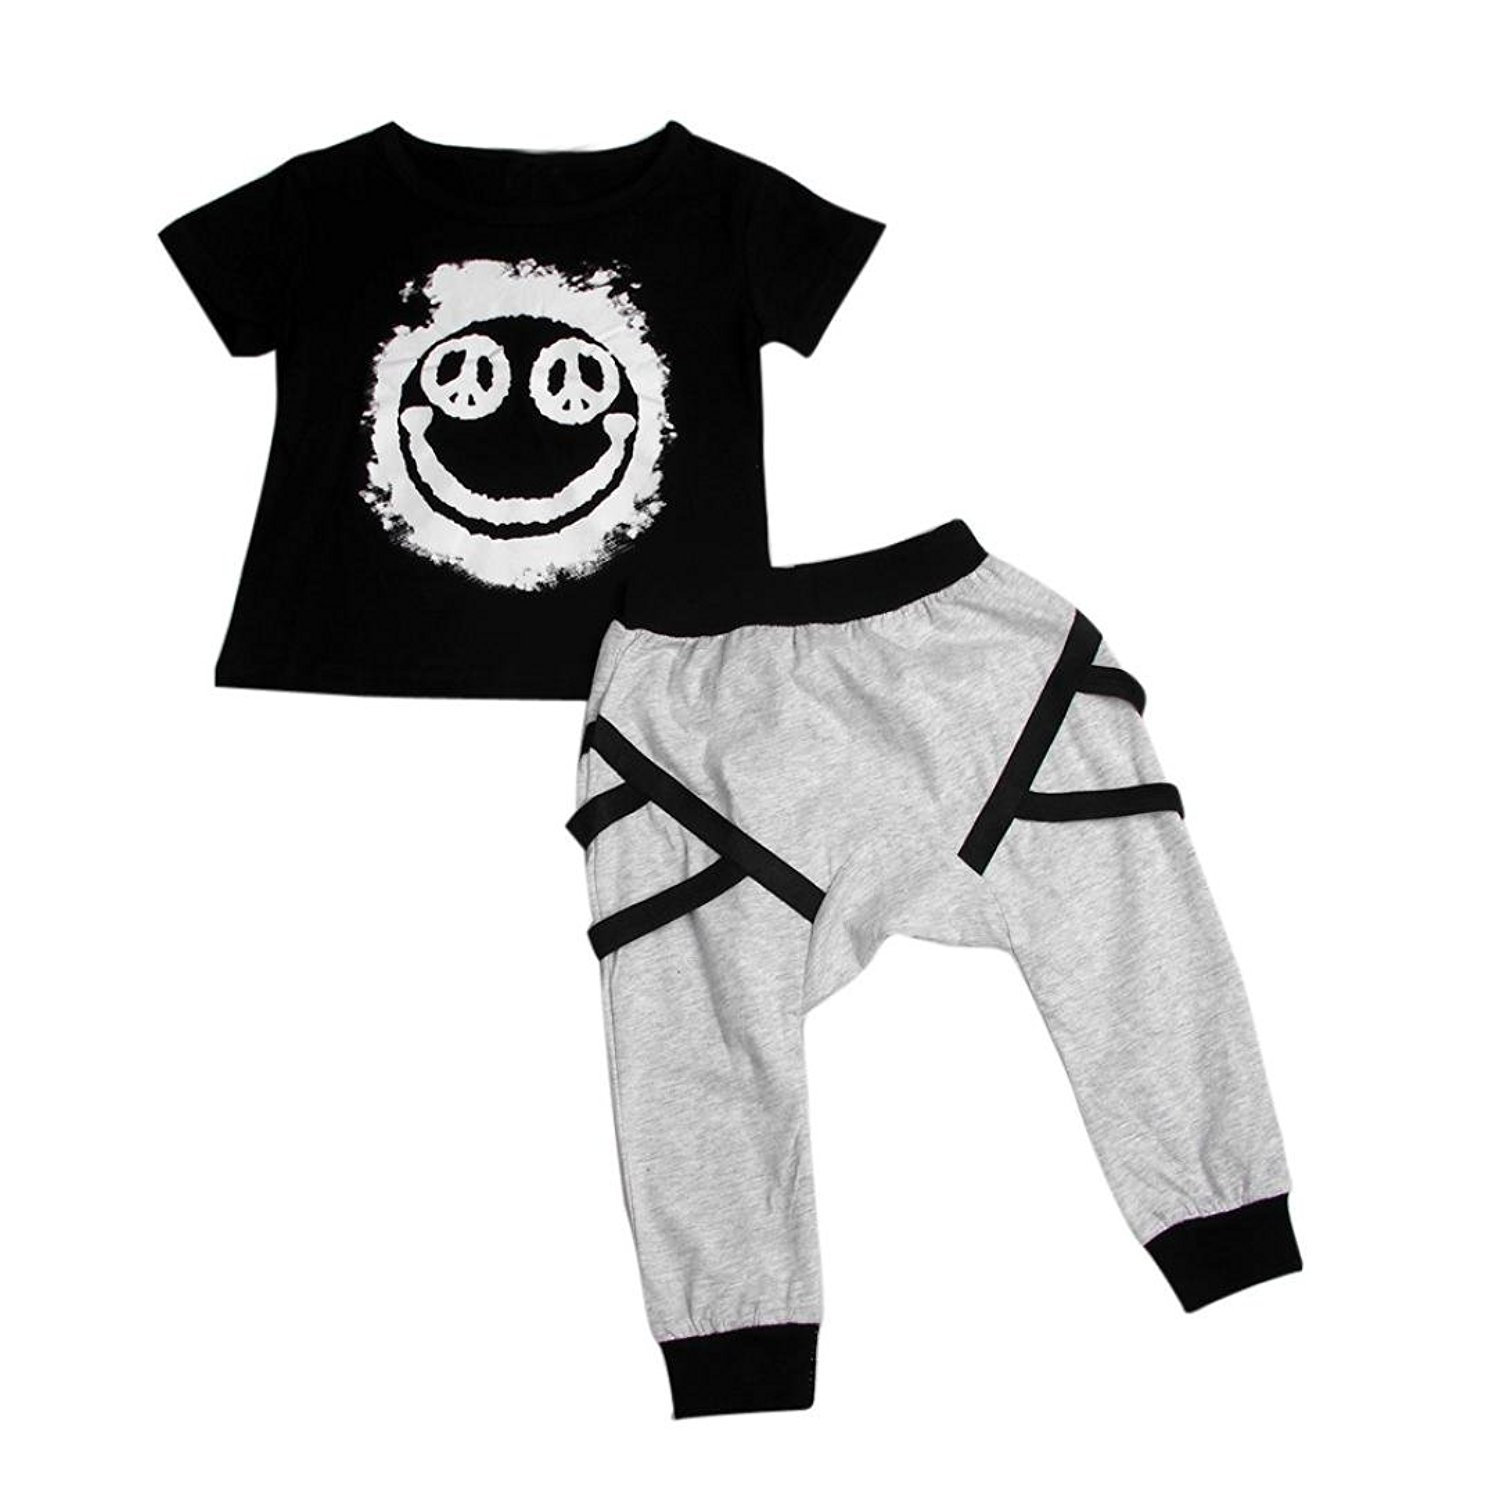 9acaf812a49 LUQUAN Set Clothes Trendy Baby Boy Letter Printed T-Shirt + Long Pants  Outfits